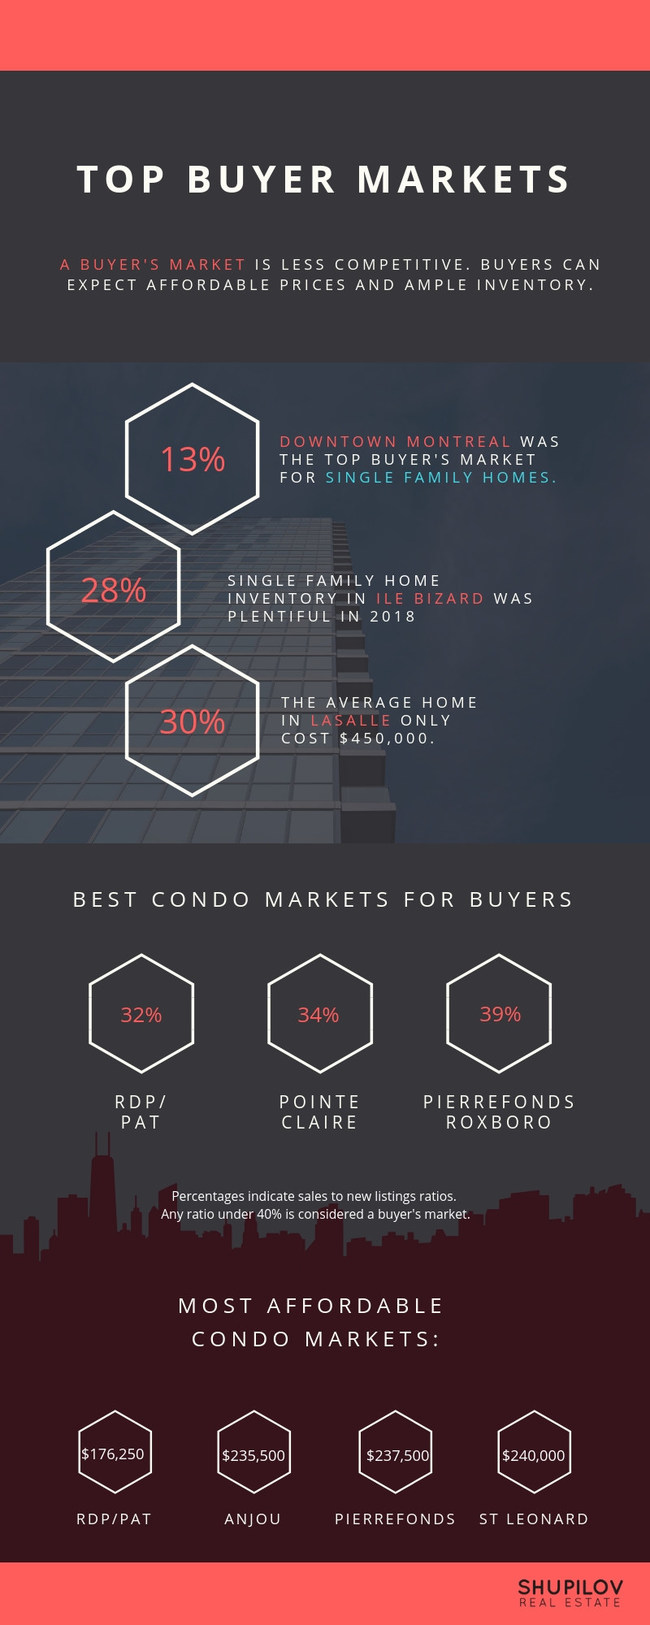 Montreal Top Buyer's Markets, Q4 2018, Ranked according to sales to new listing ratio. Source: Shupilov Real Estate (CNW Group/Shupilov Real Estate)